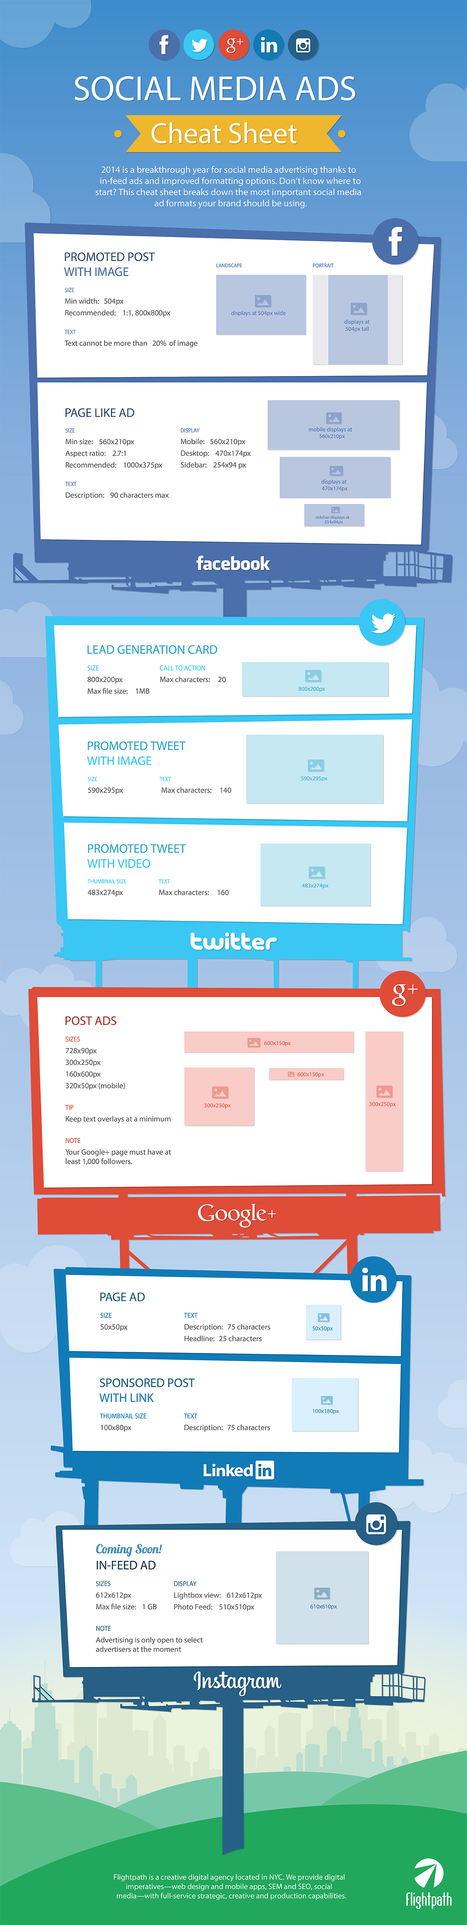 How To Format The Perfect Social Media Ads: A 2014 Cheat Sheet (Infographic) | editorials | Scoop.it